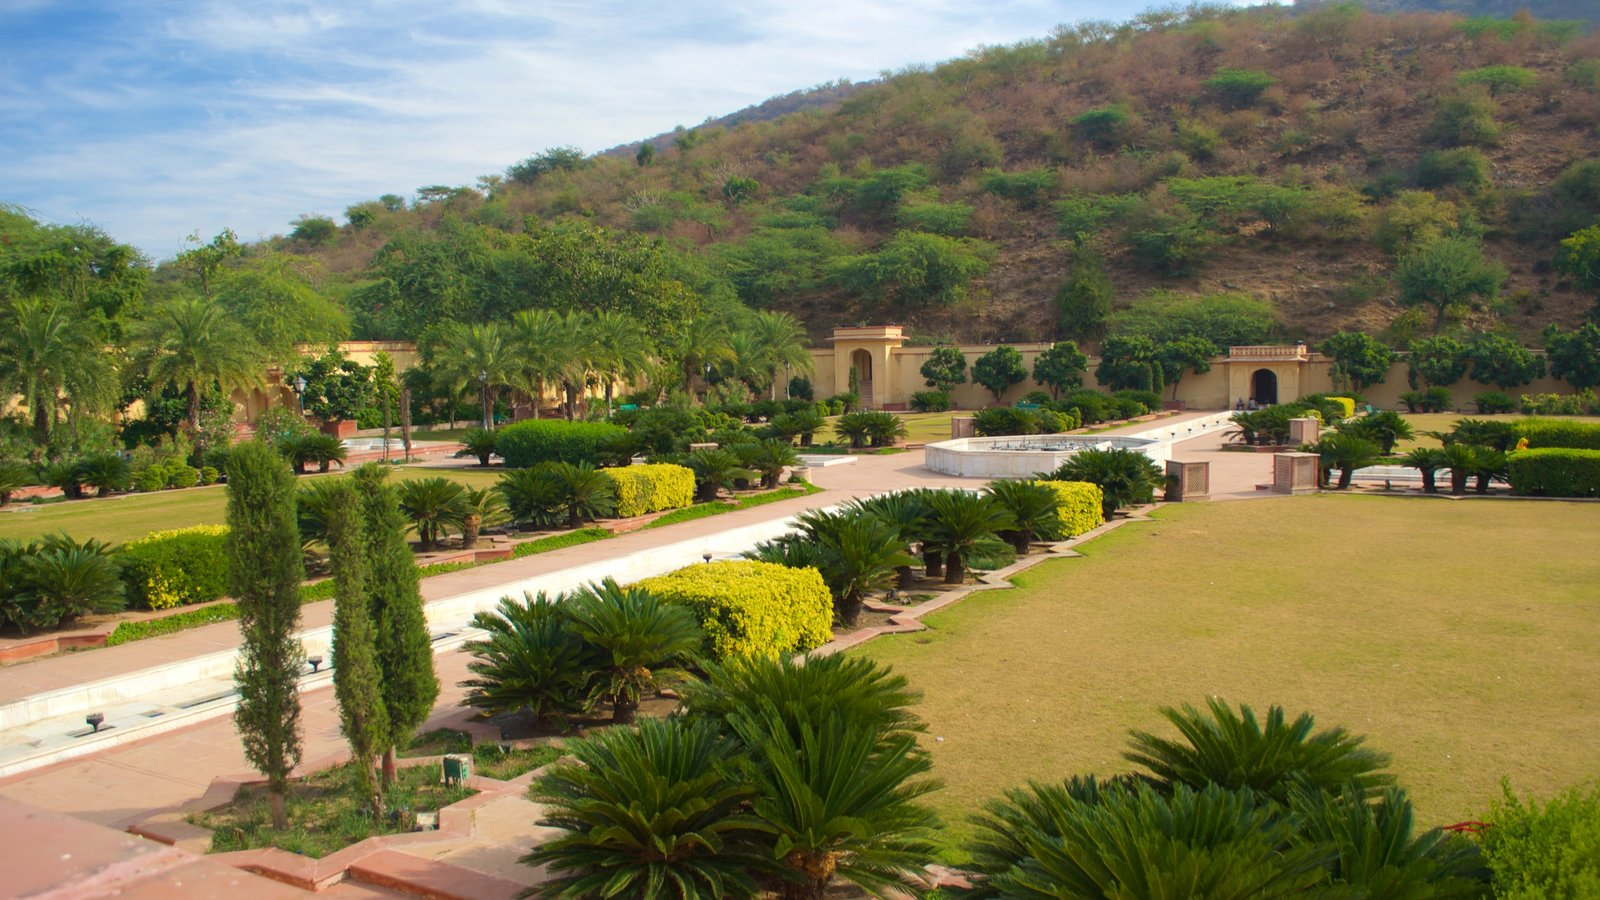 Sisodia Rani Palace And Garden Which Includes A Park